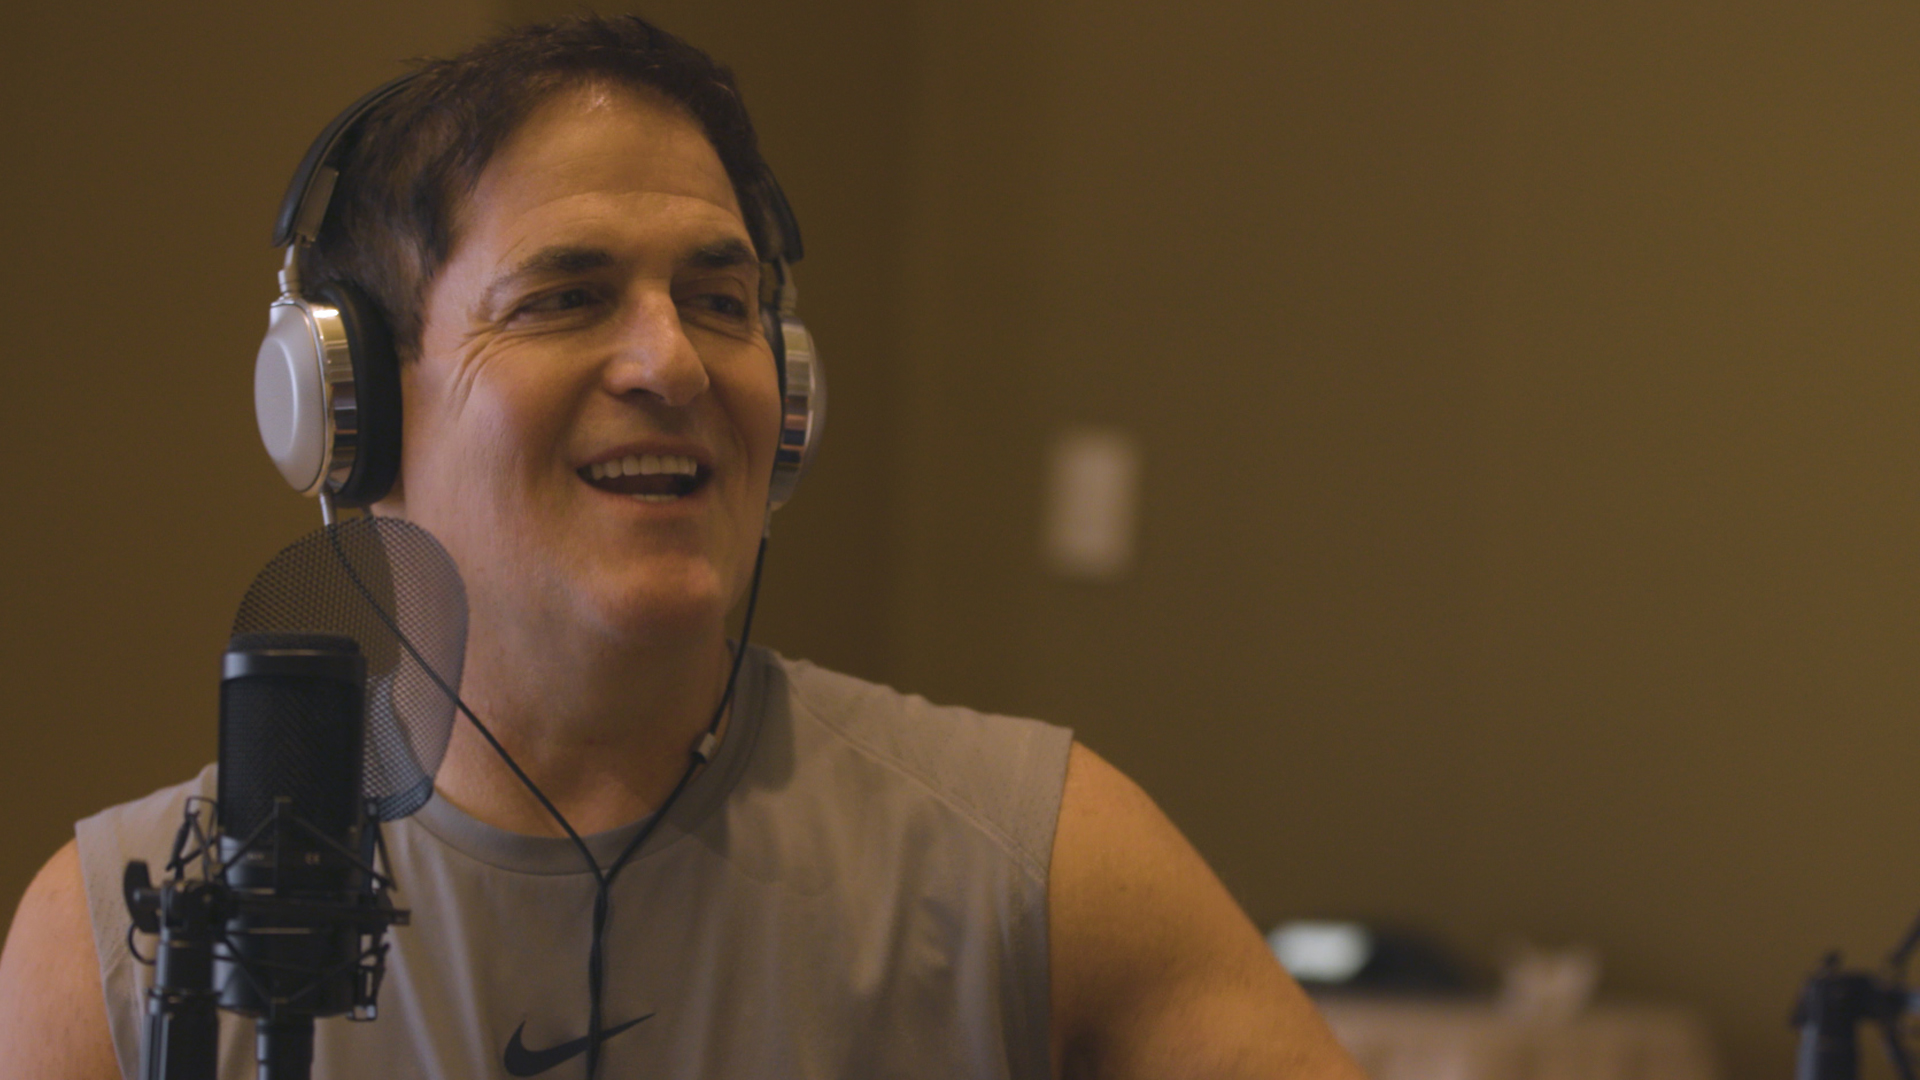 the speed of the game:EPISODE 1 - MARK CUBAN